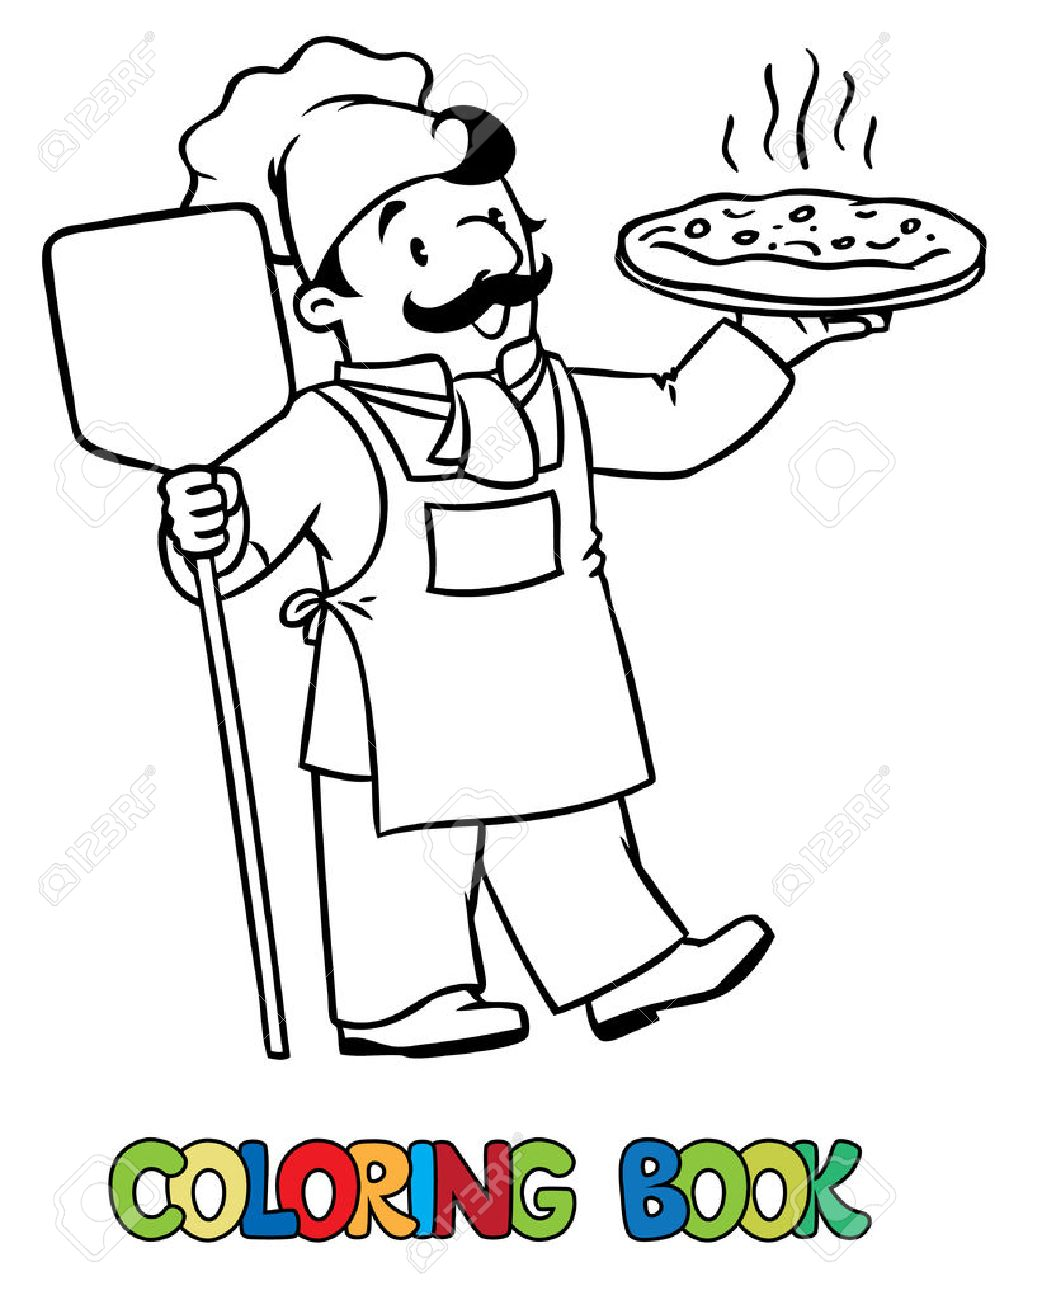 Coloring picture or coloring book of funny cook or chef or baker. Profession series. Children vector illustration. - 54880956